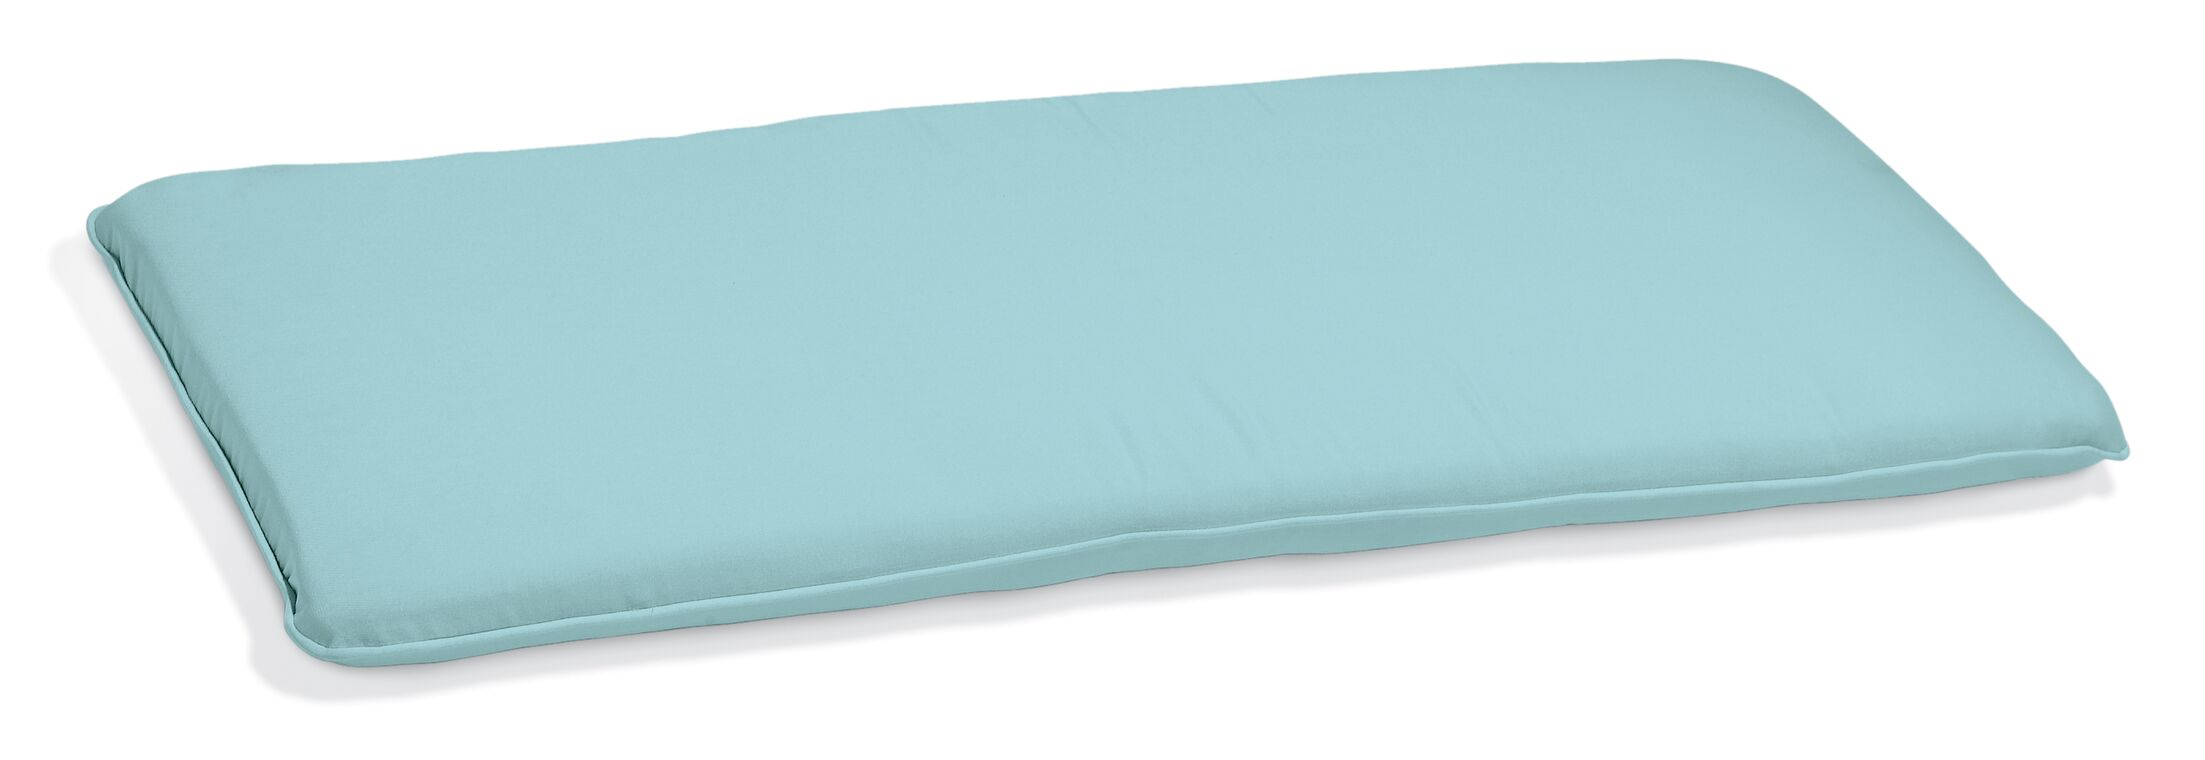 Indoor/Outdoor Sunbrella Bench Cushion Fabric: Mineral Blue, Size: 2.5